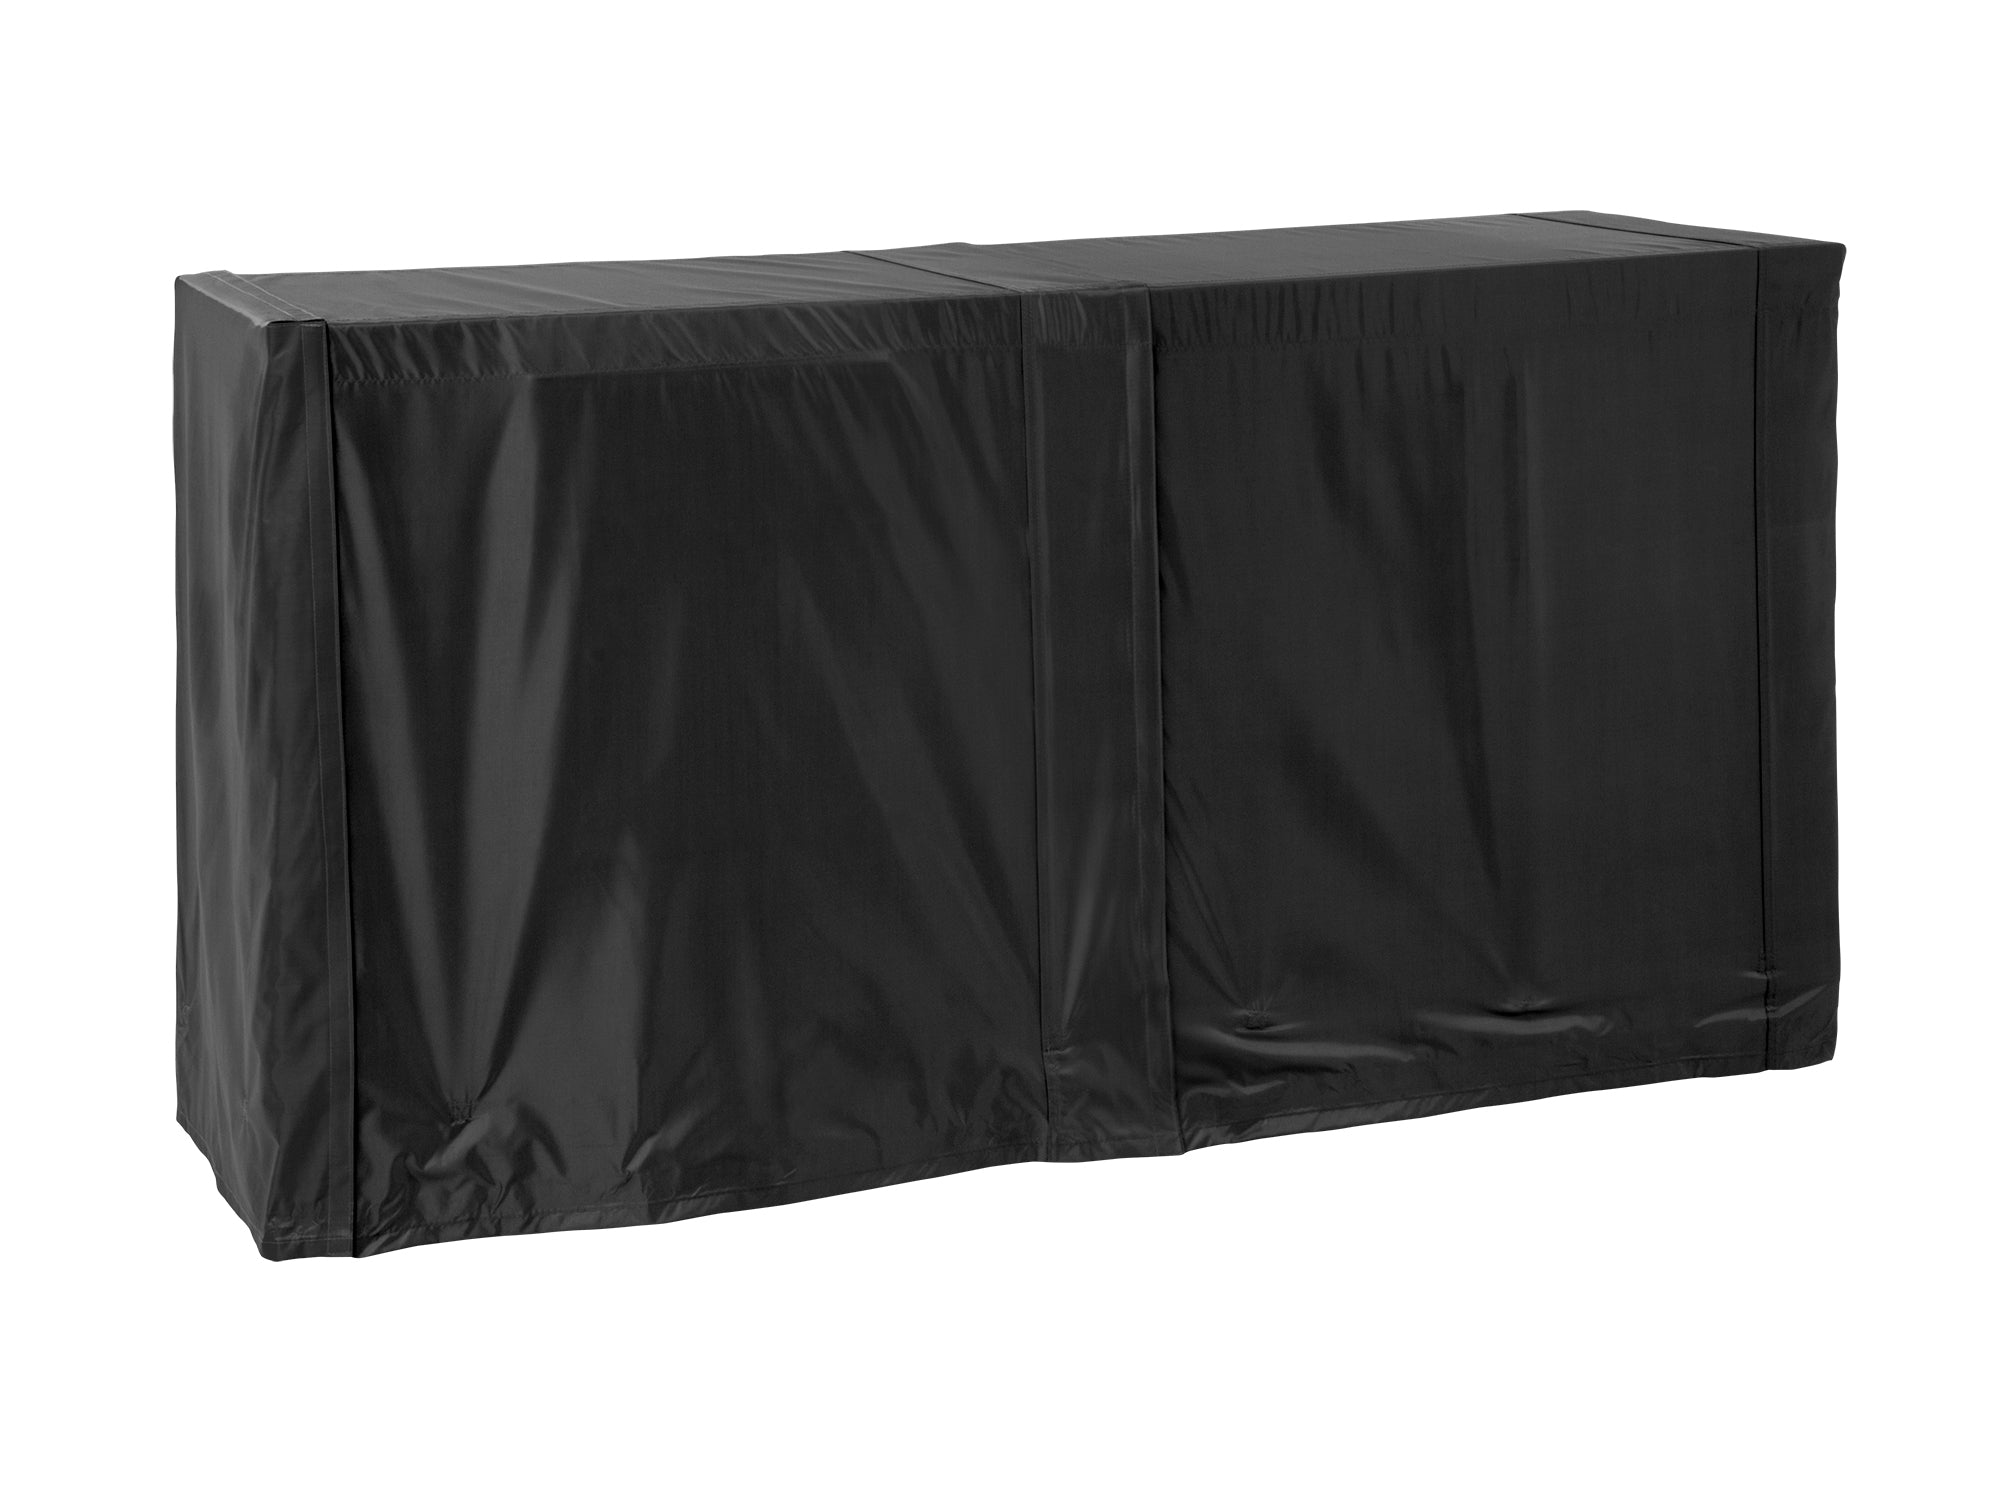 Outdoor Kitchen All-Season Cover Bundle: 33 in. Insert Grill Cabinet Cover, 64 in. Cover, Right/Left Side Panel Covers